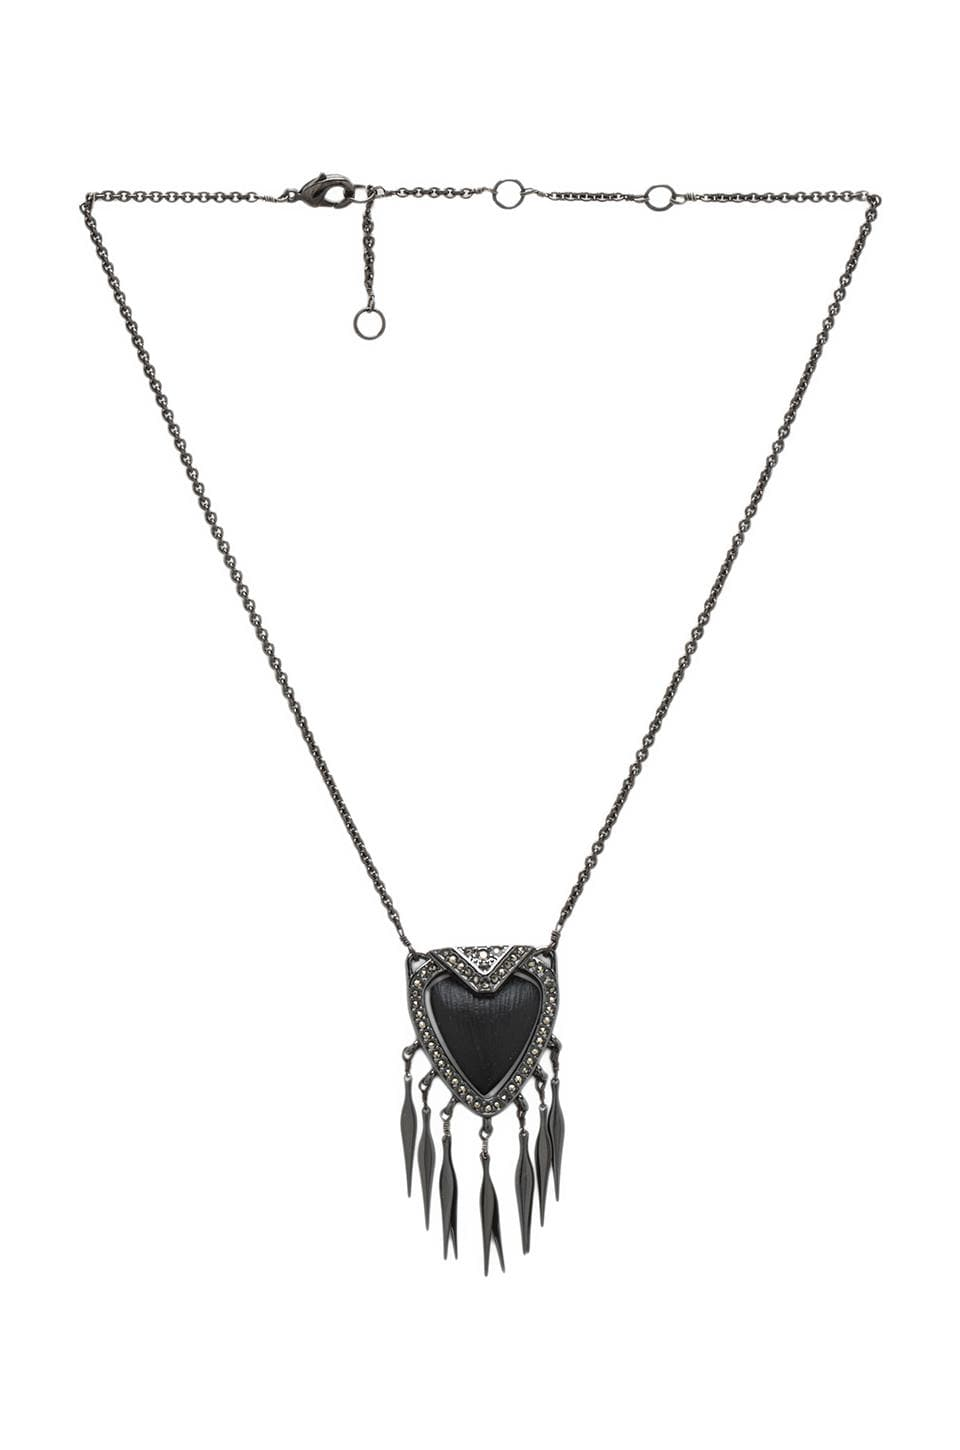 Alexis Bittar Santa Fe Deco Pendant Necklace in Black